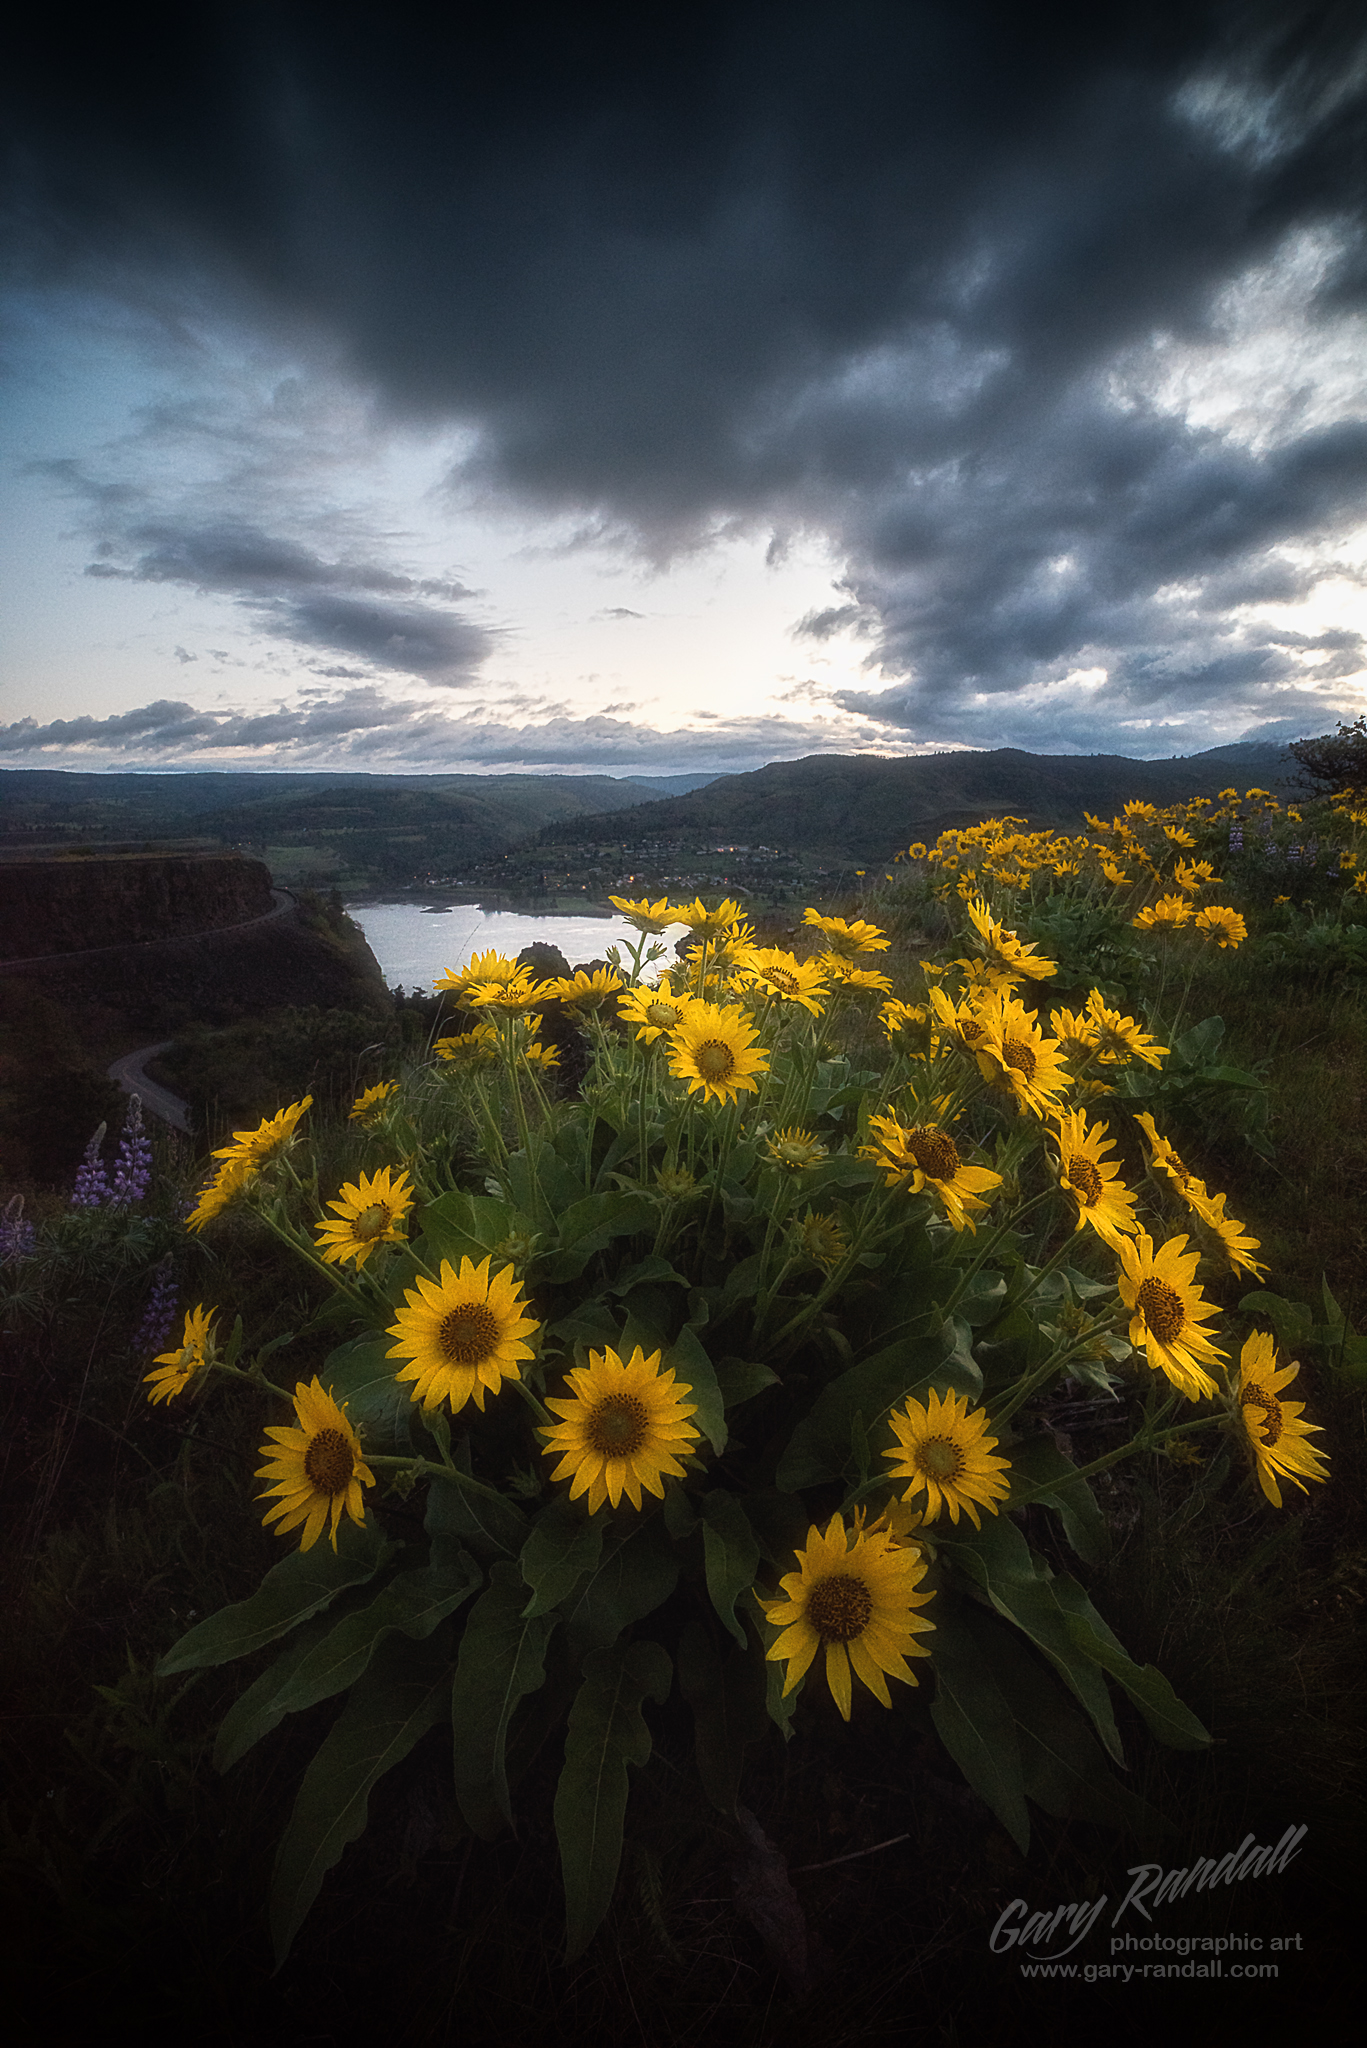 Balsamroot Sunflowers at Rowena Heights in the Columbia River Gorge